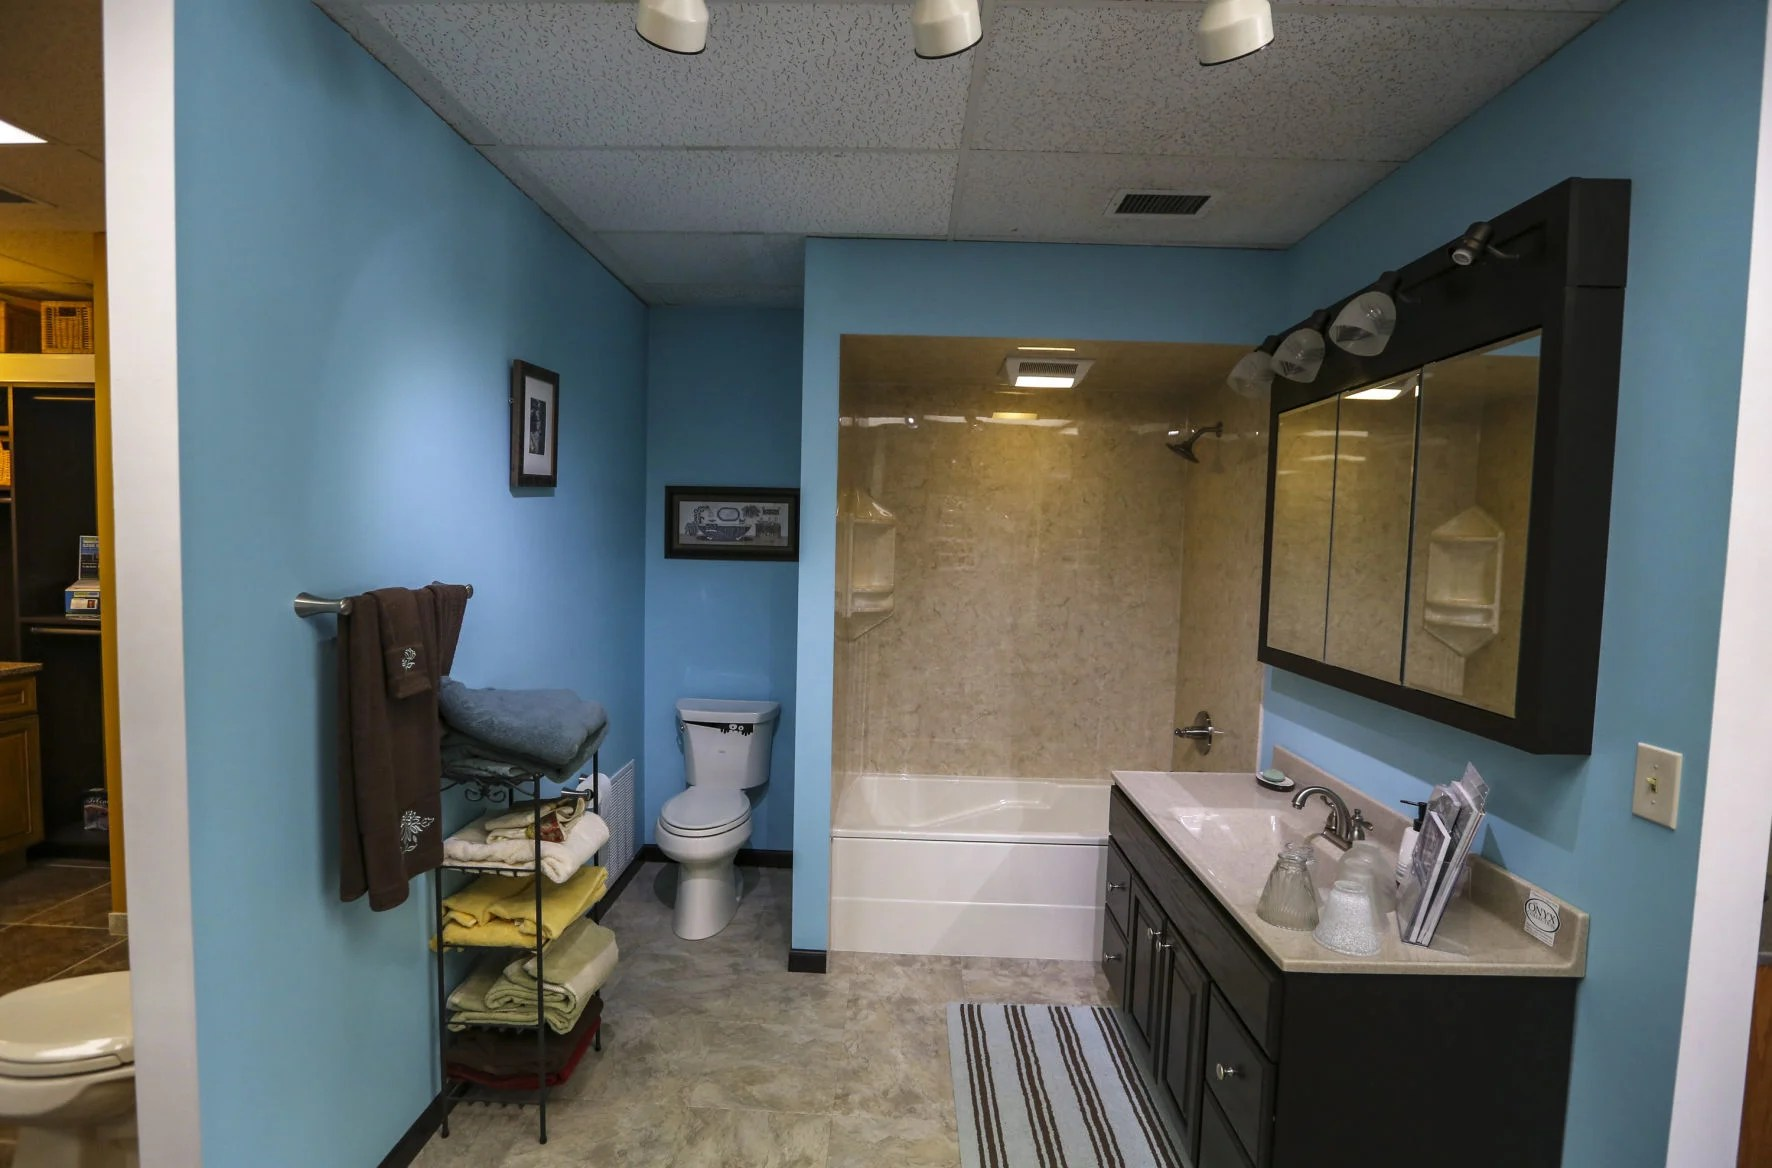 Kitchen And Bath Design Quad Cities Bettendorf Business Network Concept Bath Can Turn Home Trends Into